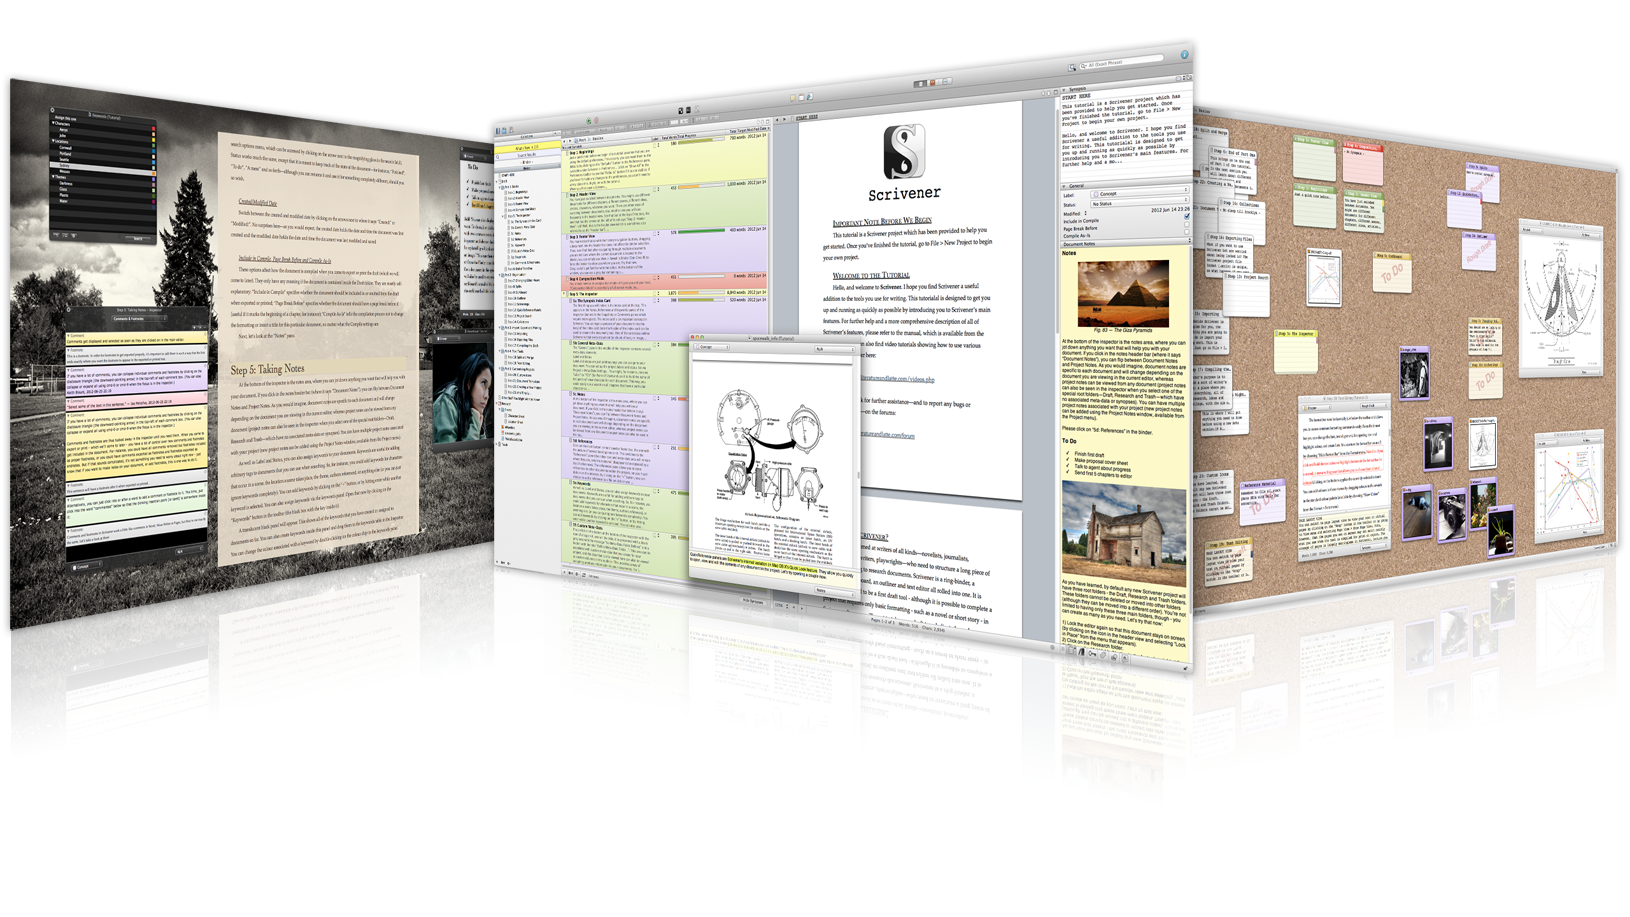 www.learn-scrivener-fast.com scrivener book wrting software